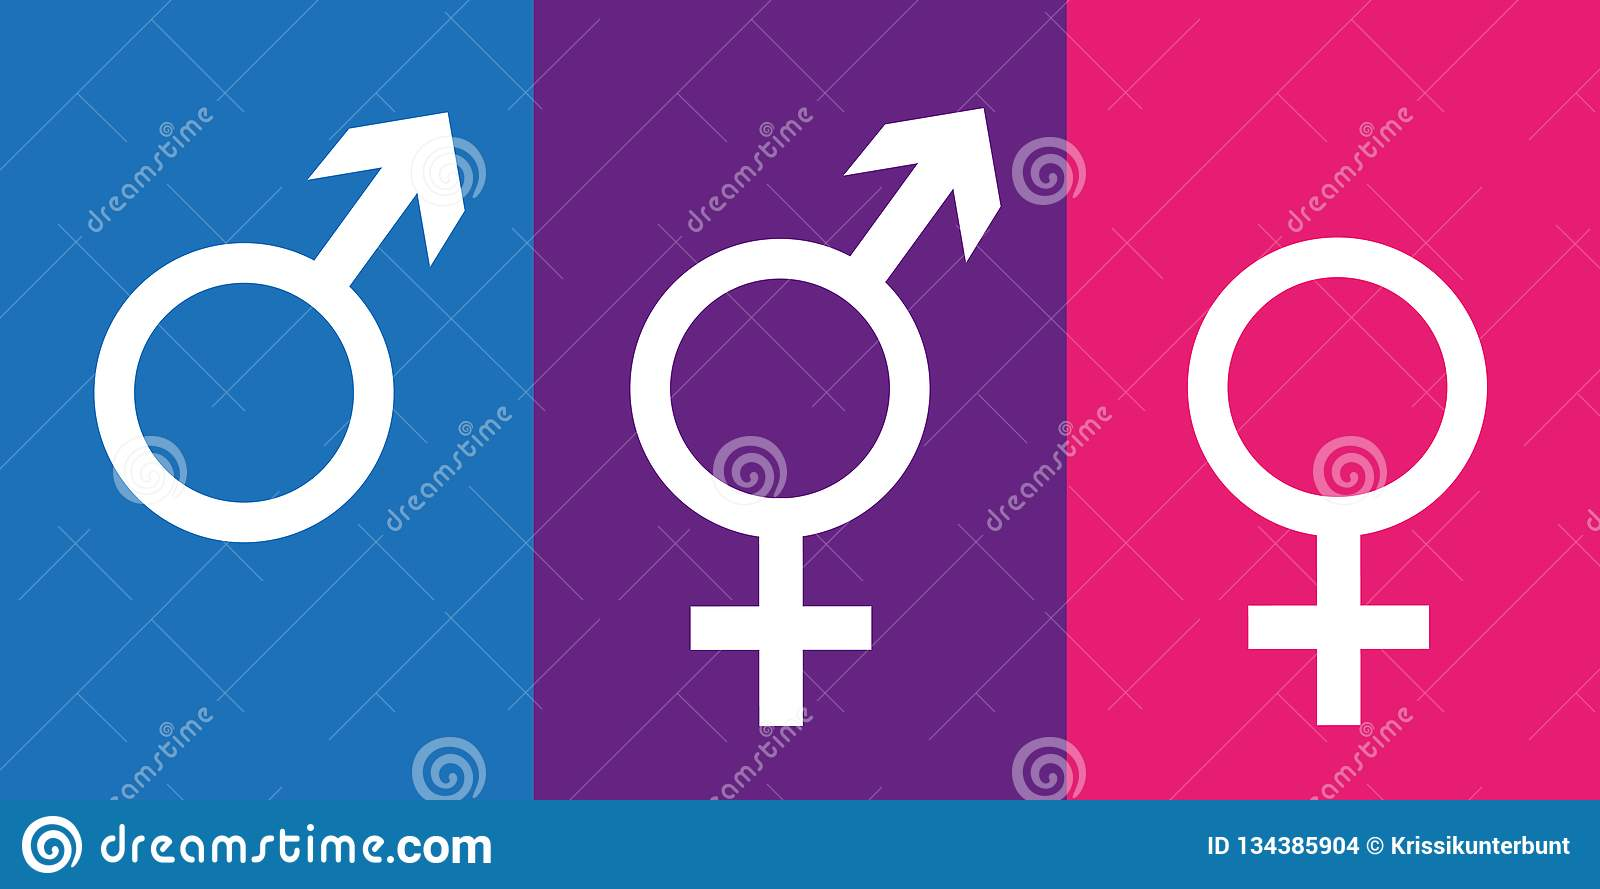 gender neutral icon stock illustrations 265 gender neutral icon stock illustrations vectors clipart dreamstime https www dreamstime com set gender symbols including neutral icon vector illustration eps image134385904